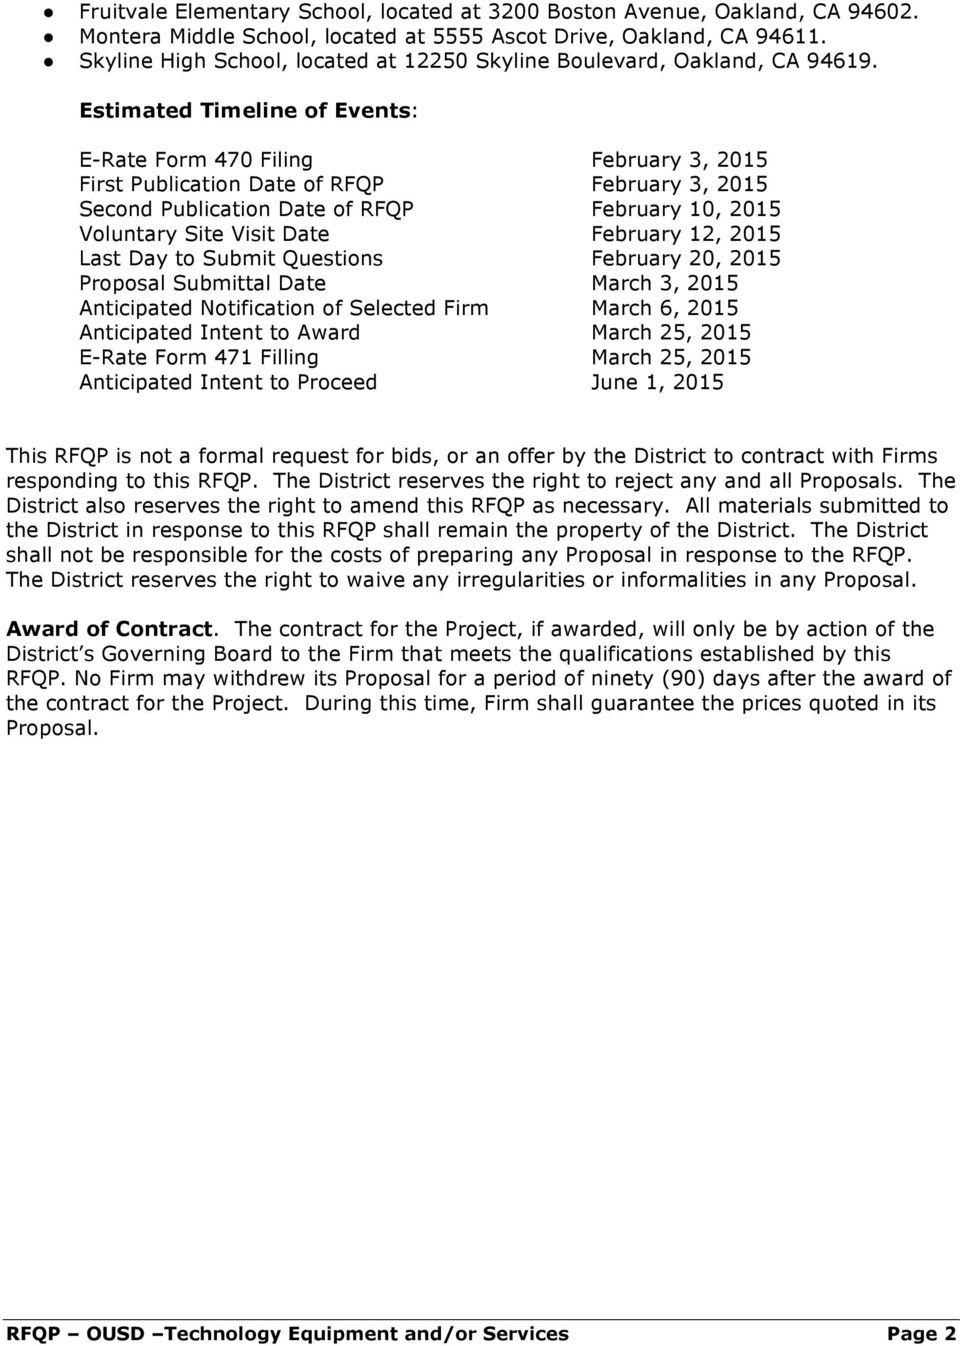 Estimated Timeline of Events: E-Rate Form 470 Filing February 3, 2015 First Publication Date of RFQP February 3, 2015 Second Publication Date of RFQP February 10, 2015 Voluntary Site Visit Date